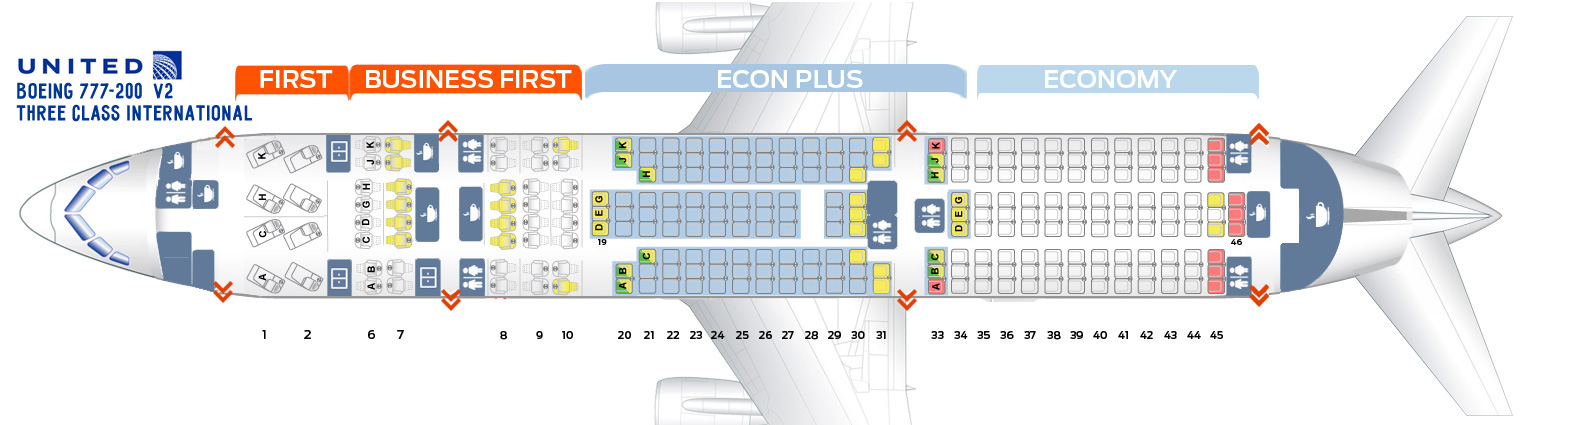 Seat_map_United_Airlines_Boeing_777_200_Three_Class_International_v2